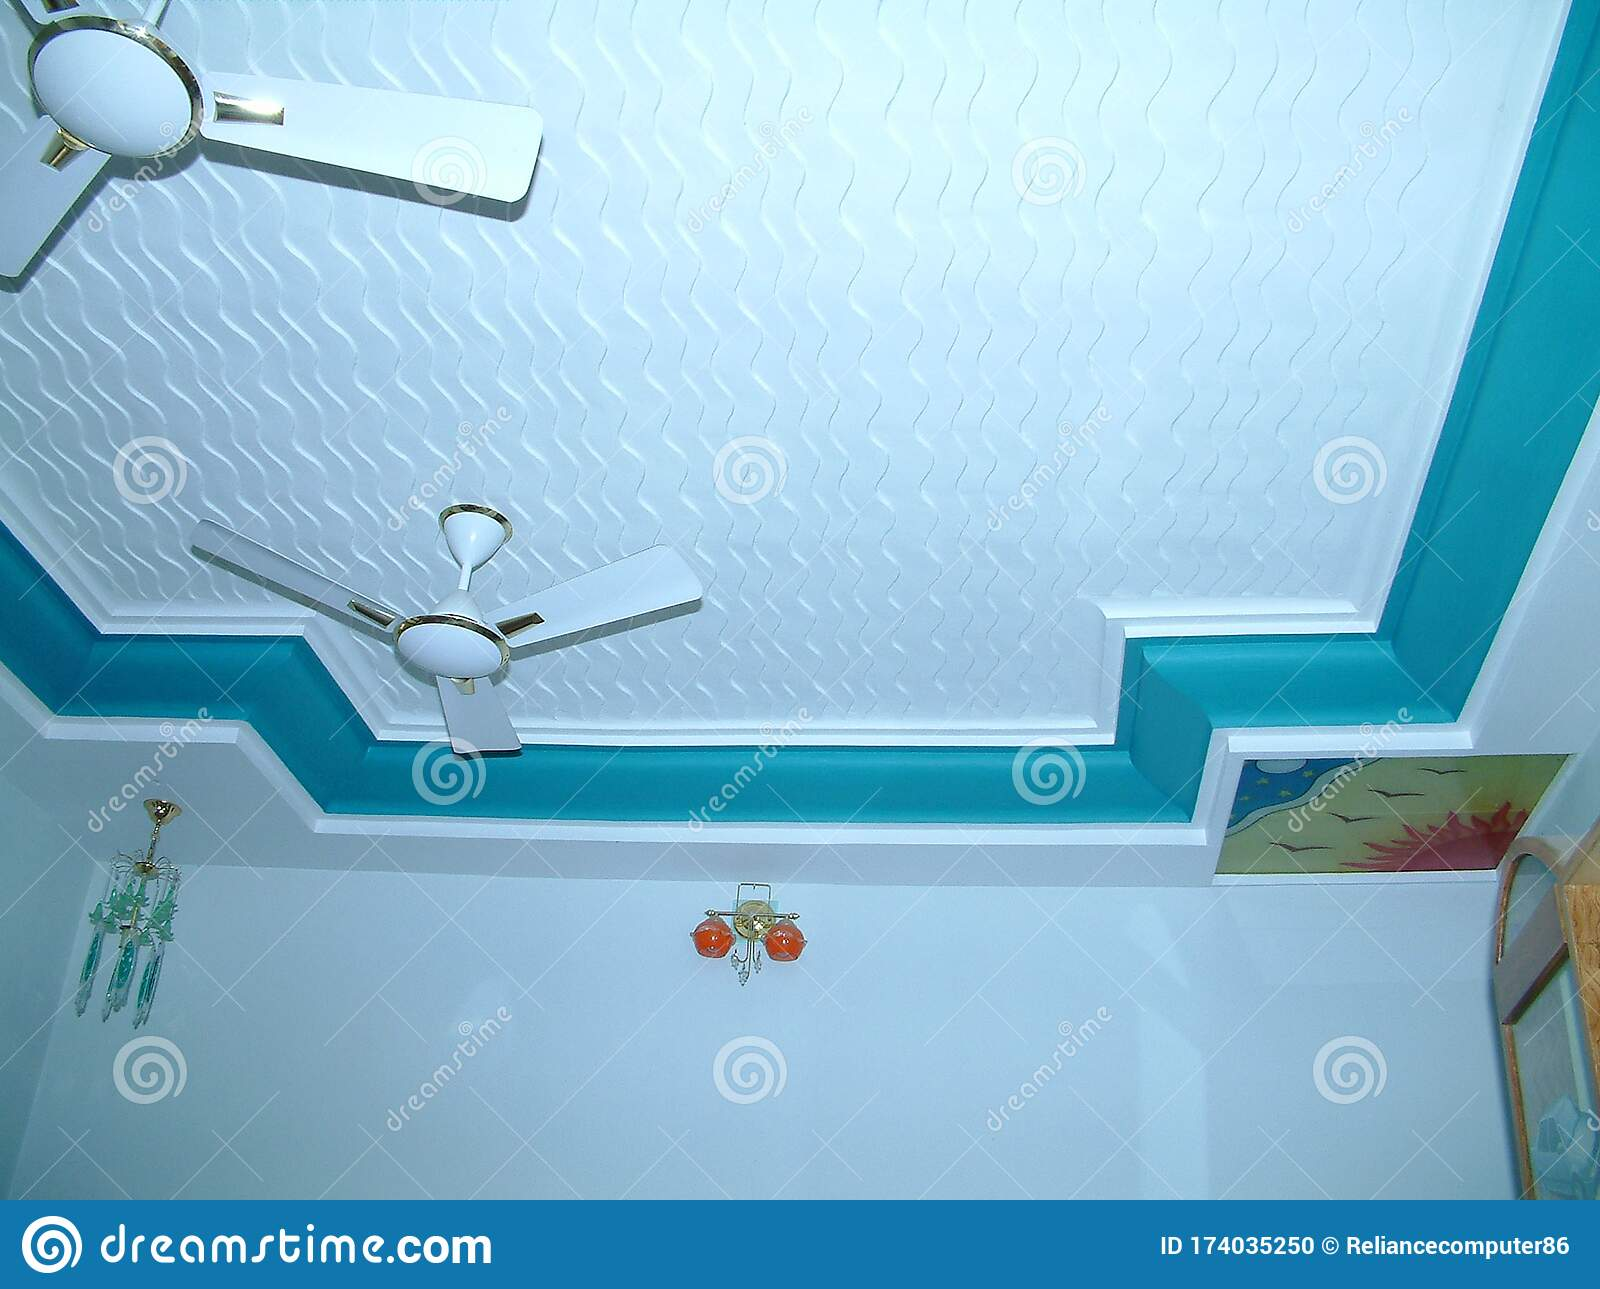 541 Ceiling Design Ideas Interior Photos Free Royalty Free Stock Photos From Dreamstime